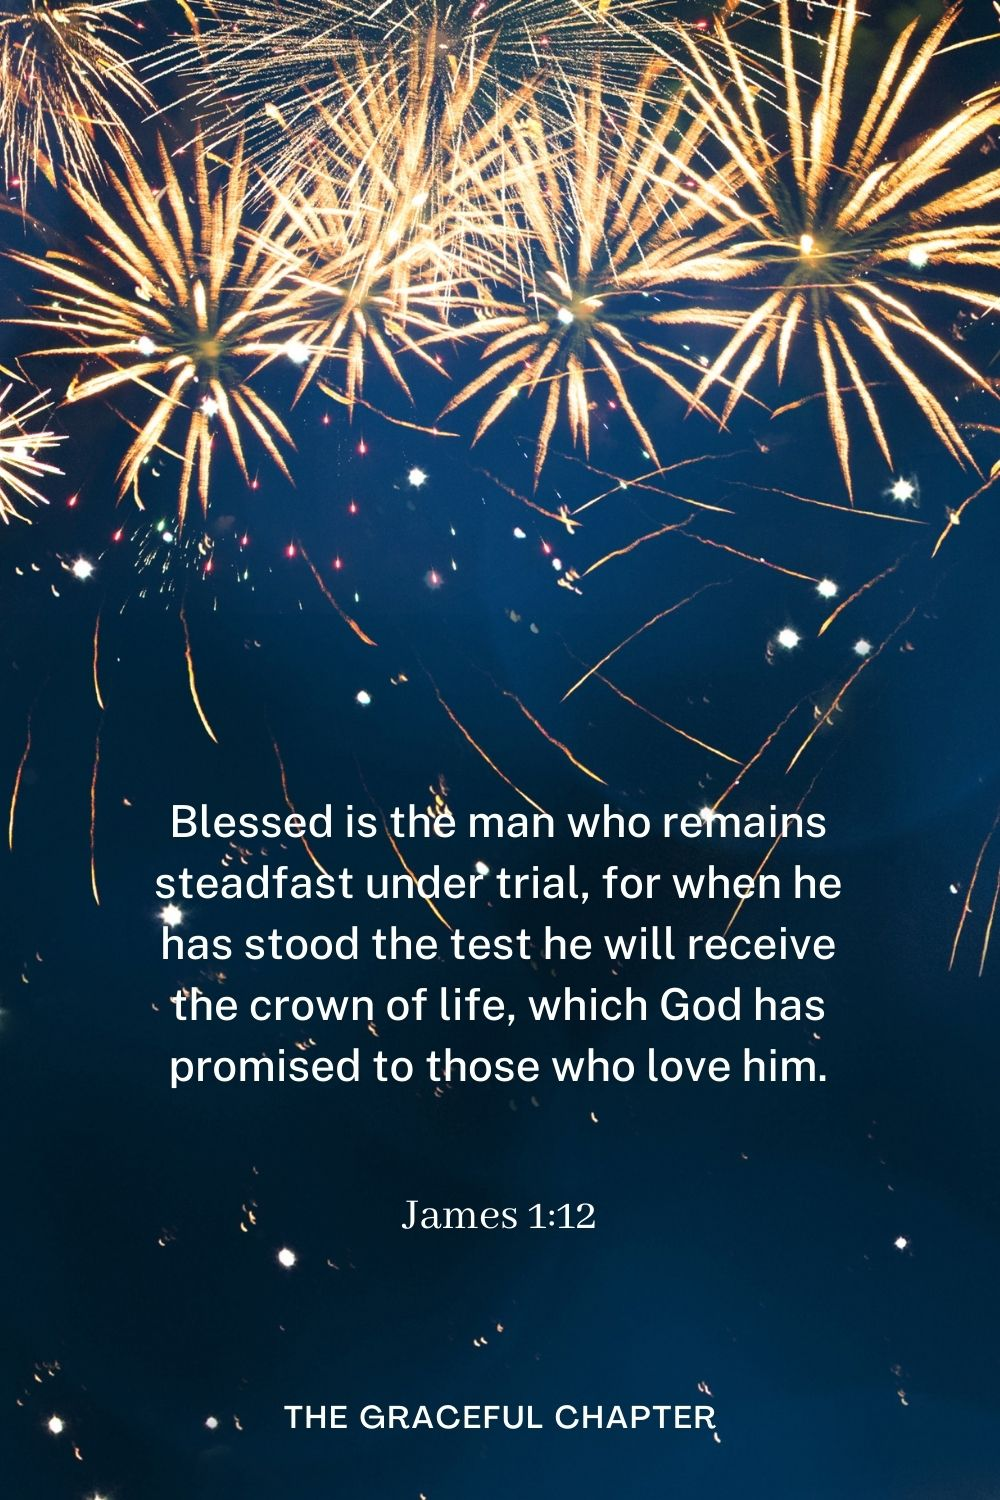 Blessed is the man who remains steadfast under trial, for when he has stood the test he will receive the crown of life, which God has promised to those who love him. James 1:12